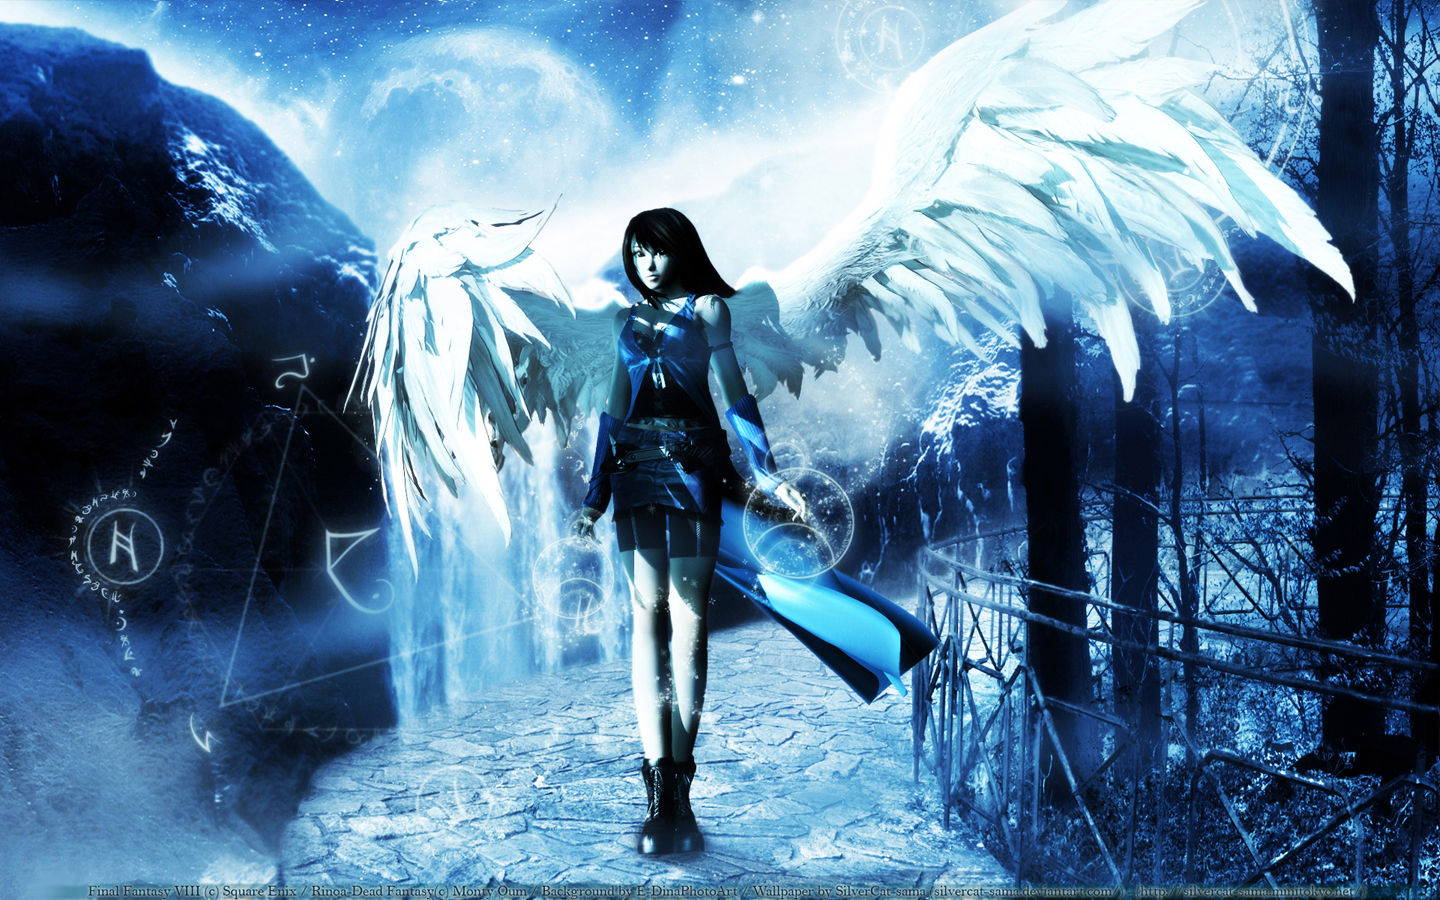 Final Fantasy VIII Rinoa Heartilly wallpaper 1440x900 101564 1440x900